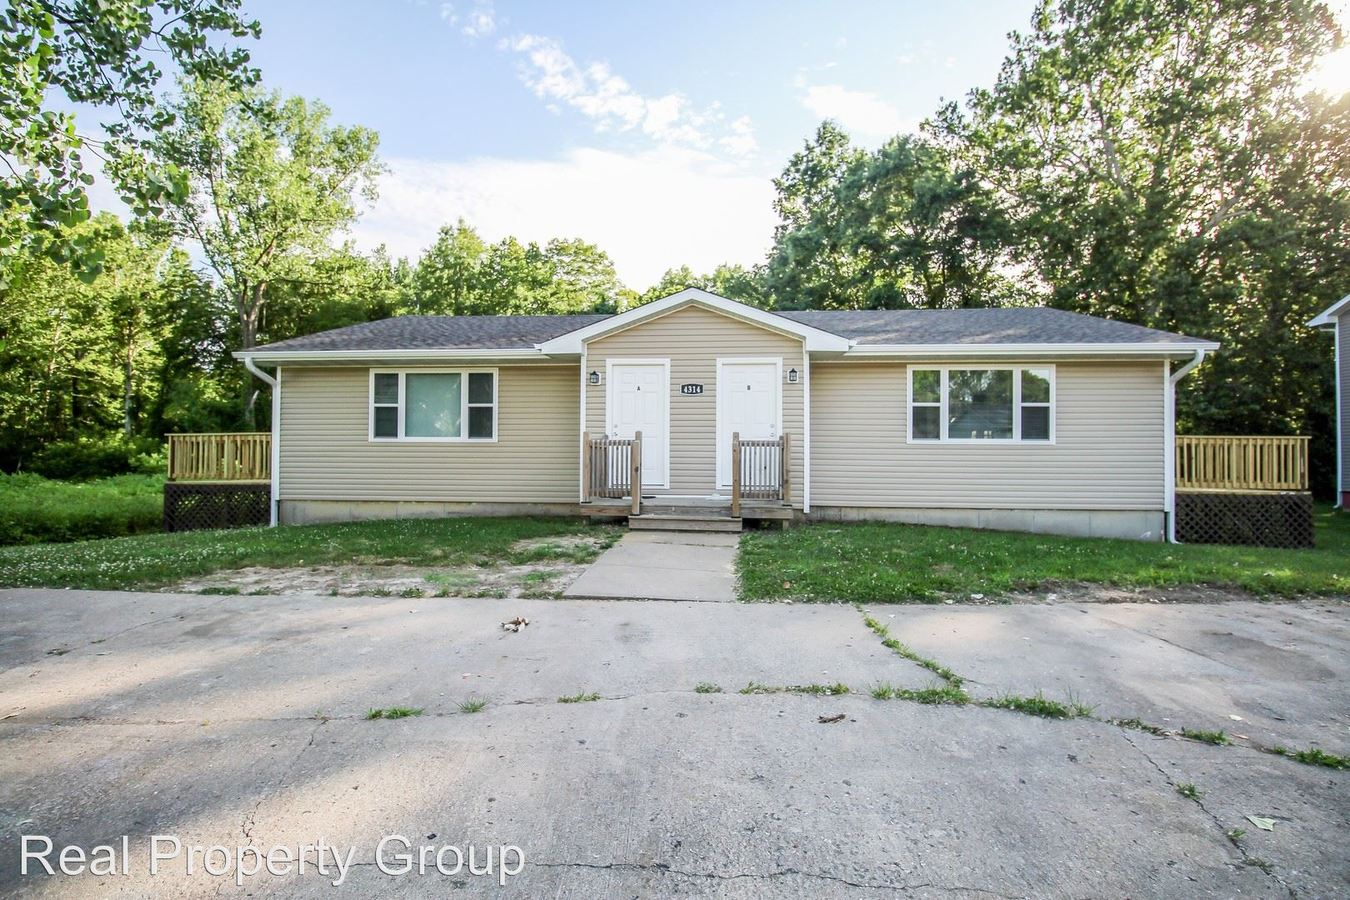 2 Bedrooms 1 Bathroom Apartment for rent at 4314 Mesa Dr. in Columbia, MO